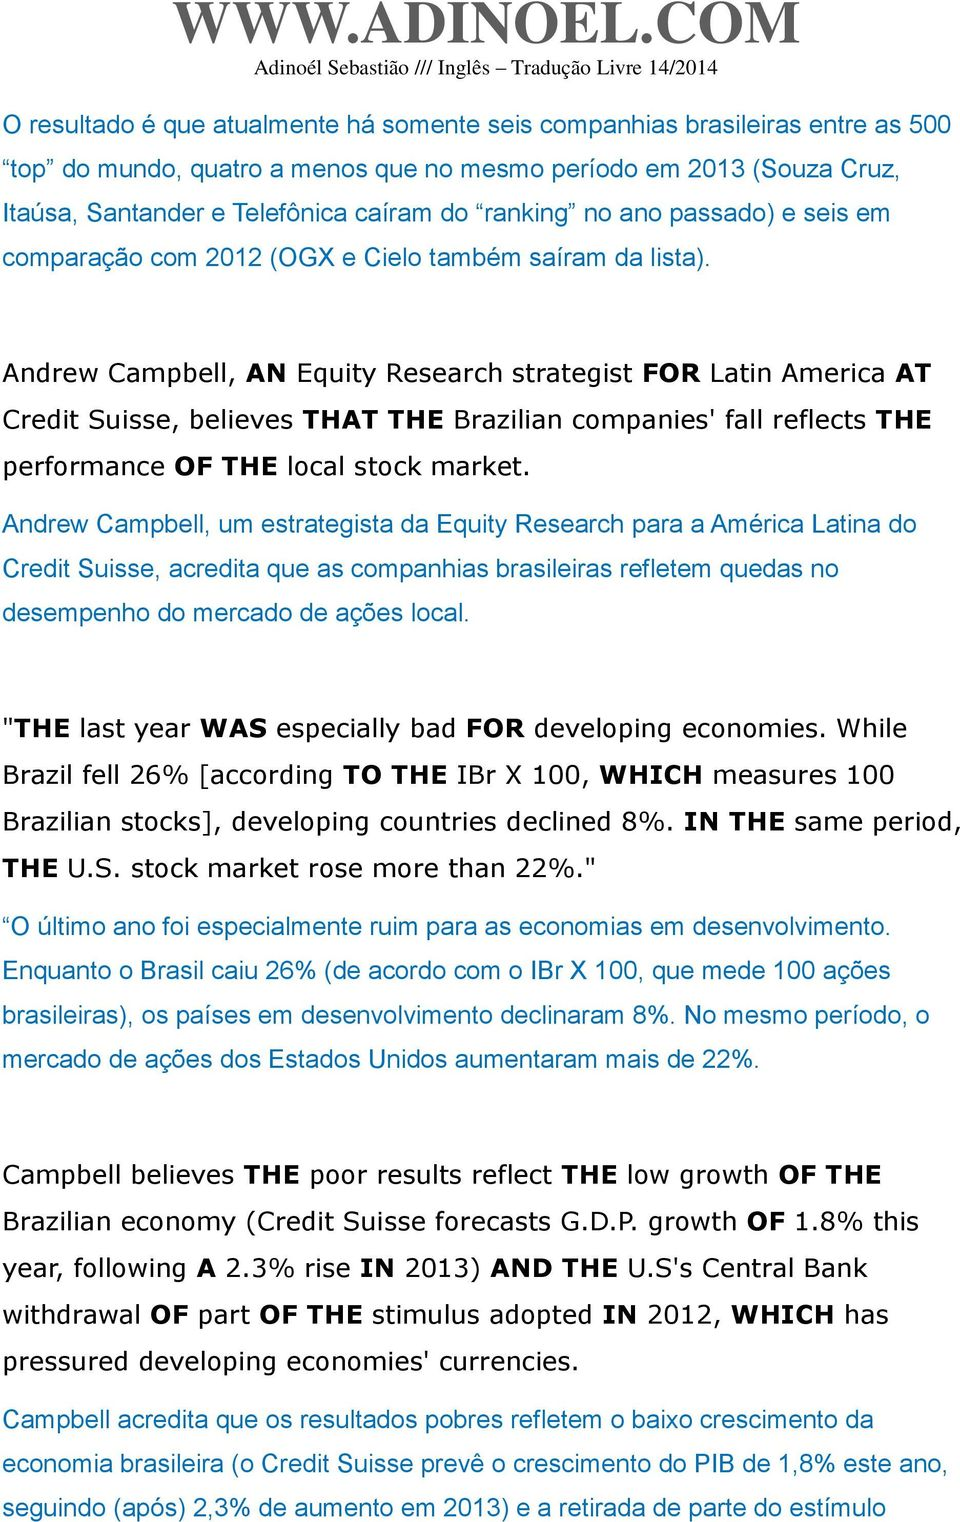 Andrew Campbell, AN Equity Research strategist FOR Latin America AT Credit Suisse, believes THAT THE Brazilian companies' fall reflects THE performance OF THE local stock market.